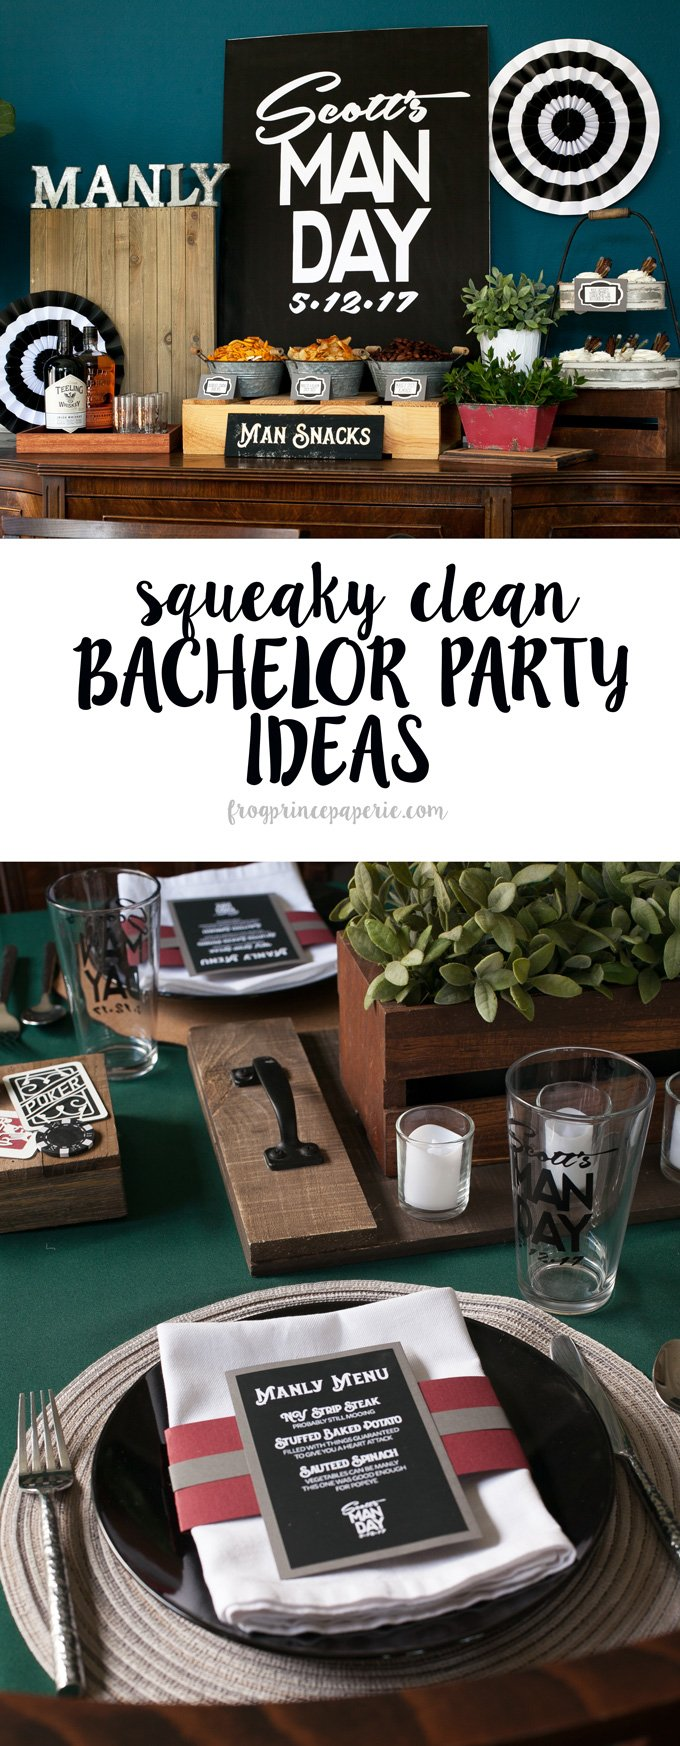 Squeaky clean bachelor party ideas for your wolf pack